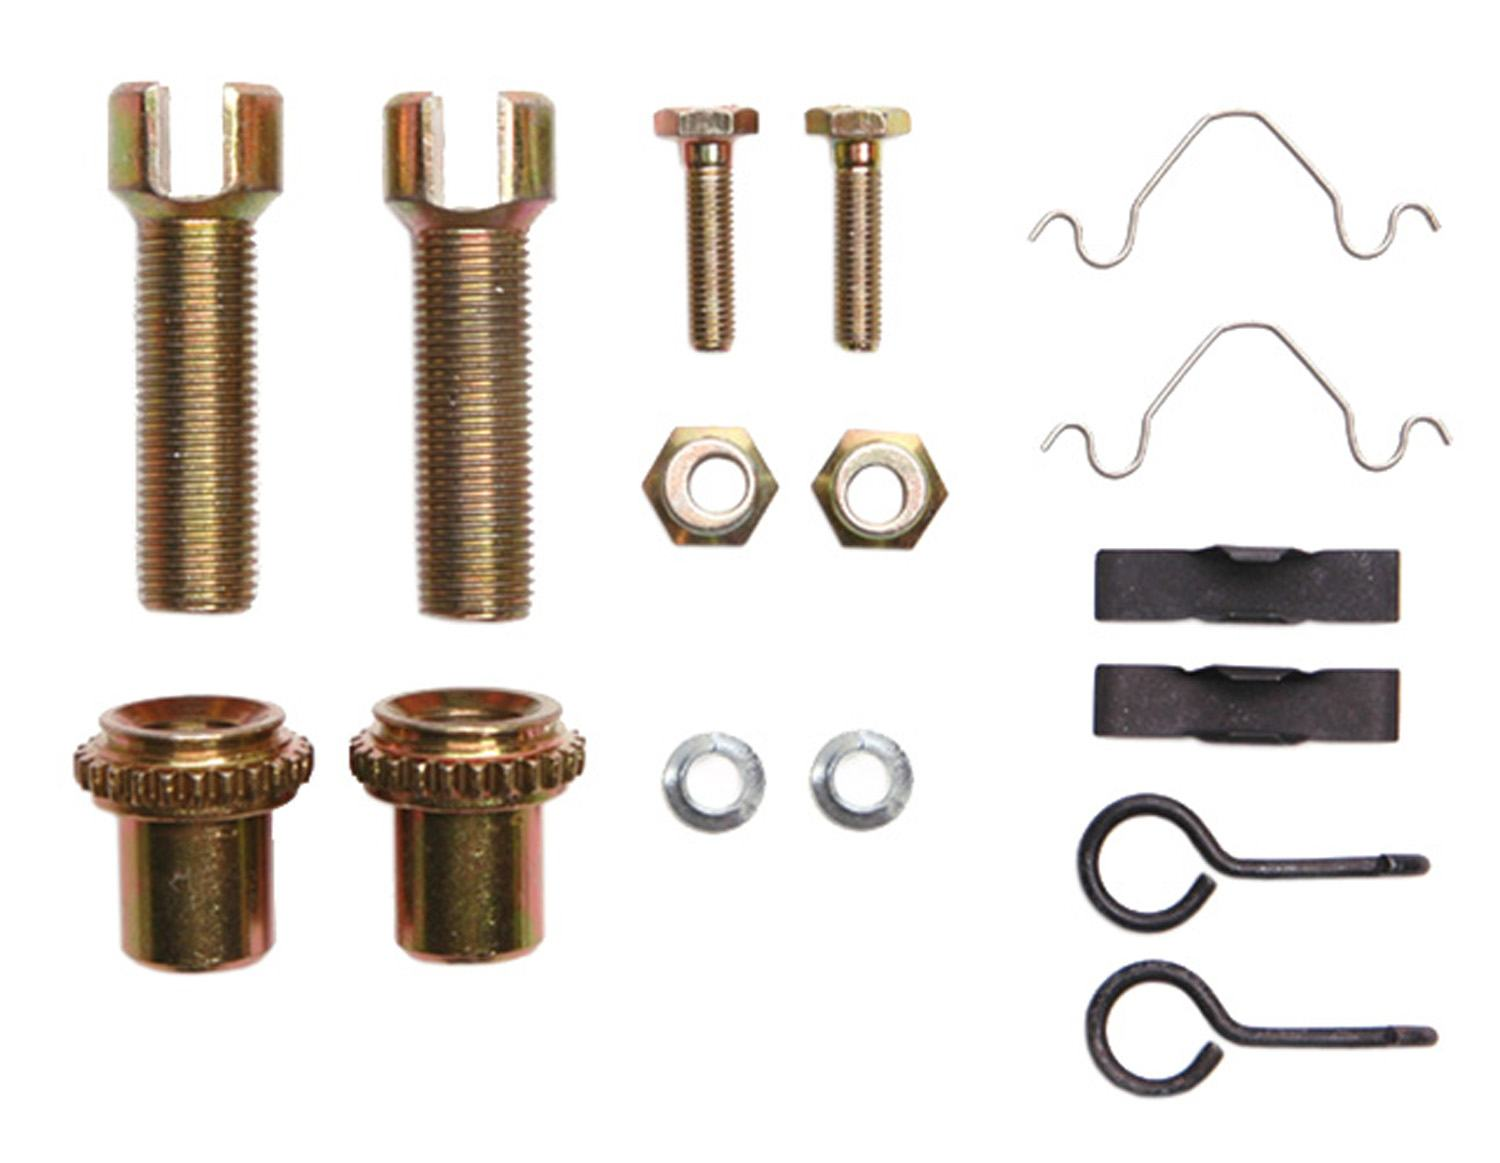 ACDELCO GOLD/PROFESSIONAL BRAKES - Drum Brake Self-Adjuster Repair Kit - ADU 18K1125